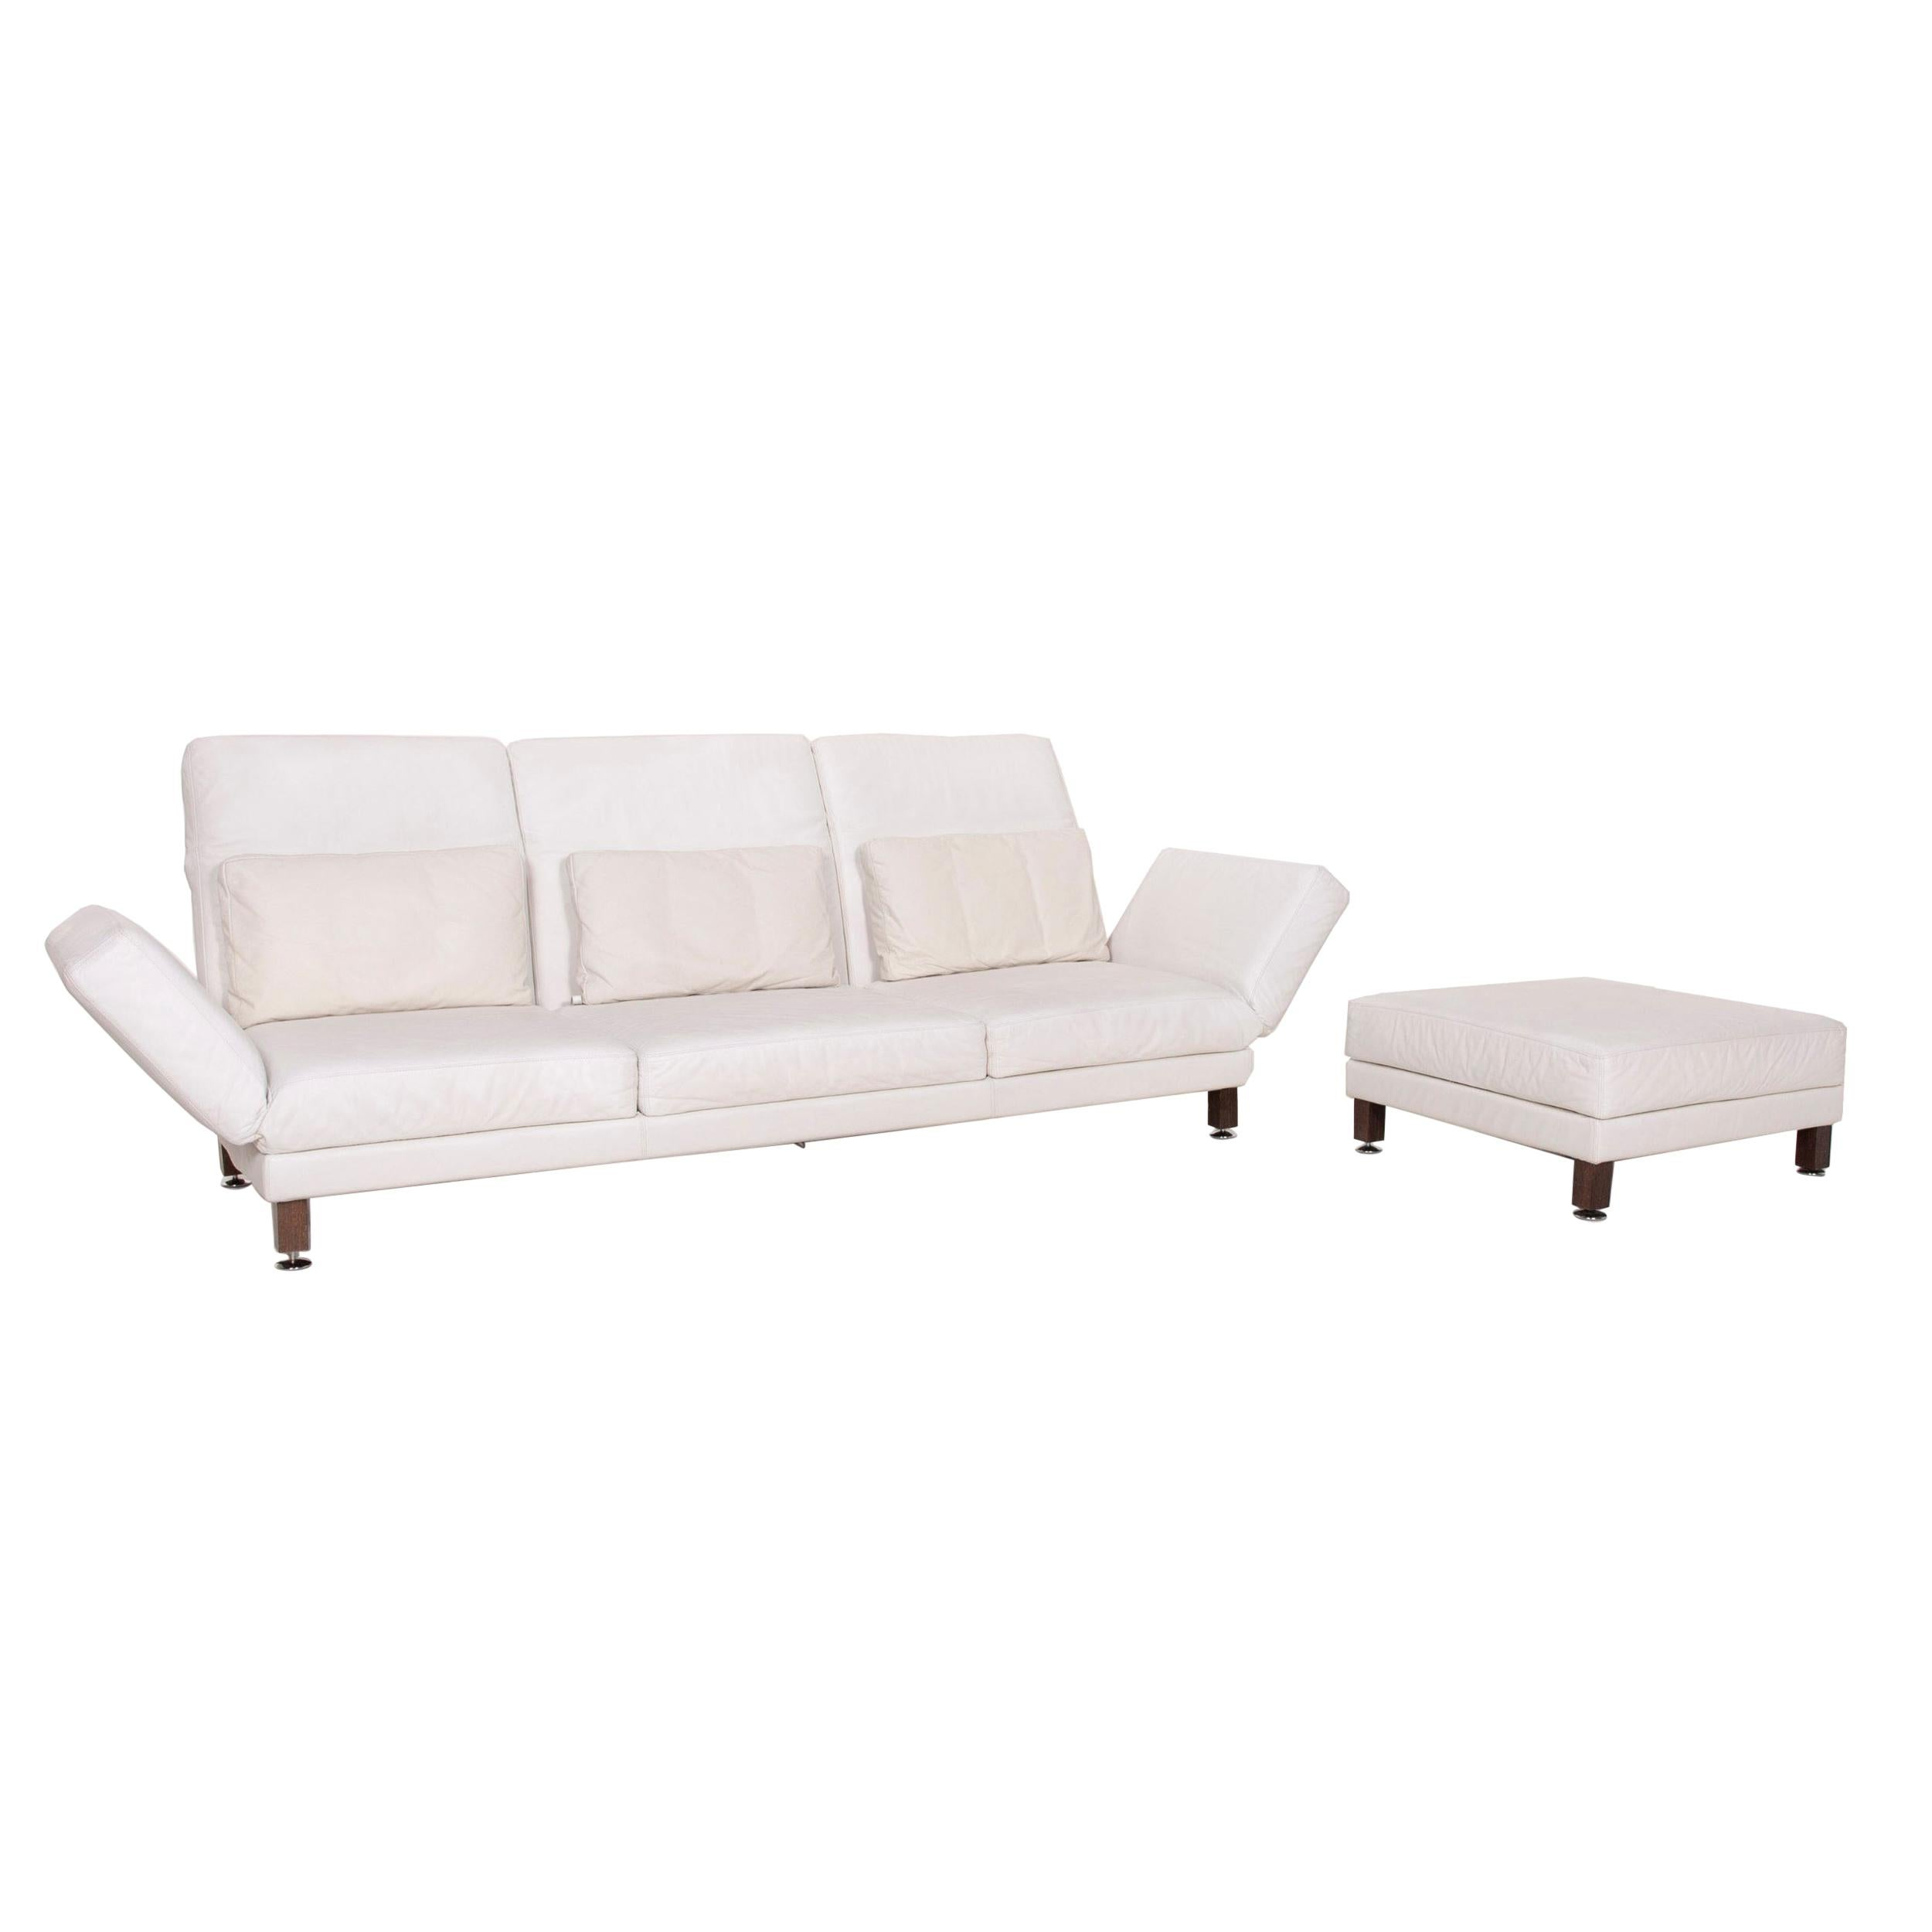 Brühl & Sippold Moule Leather Sofa Set White Three-Seater Relax Function Stool